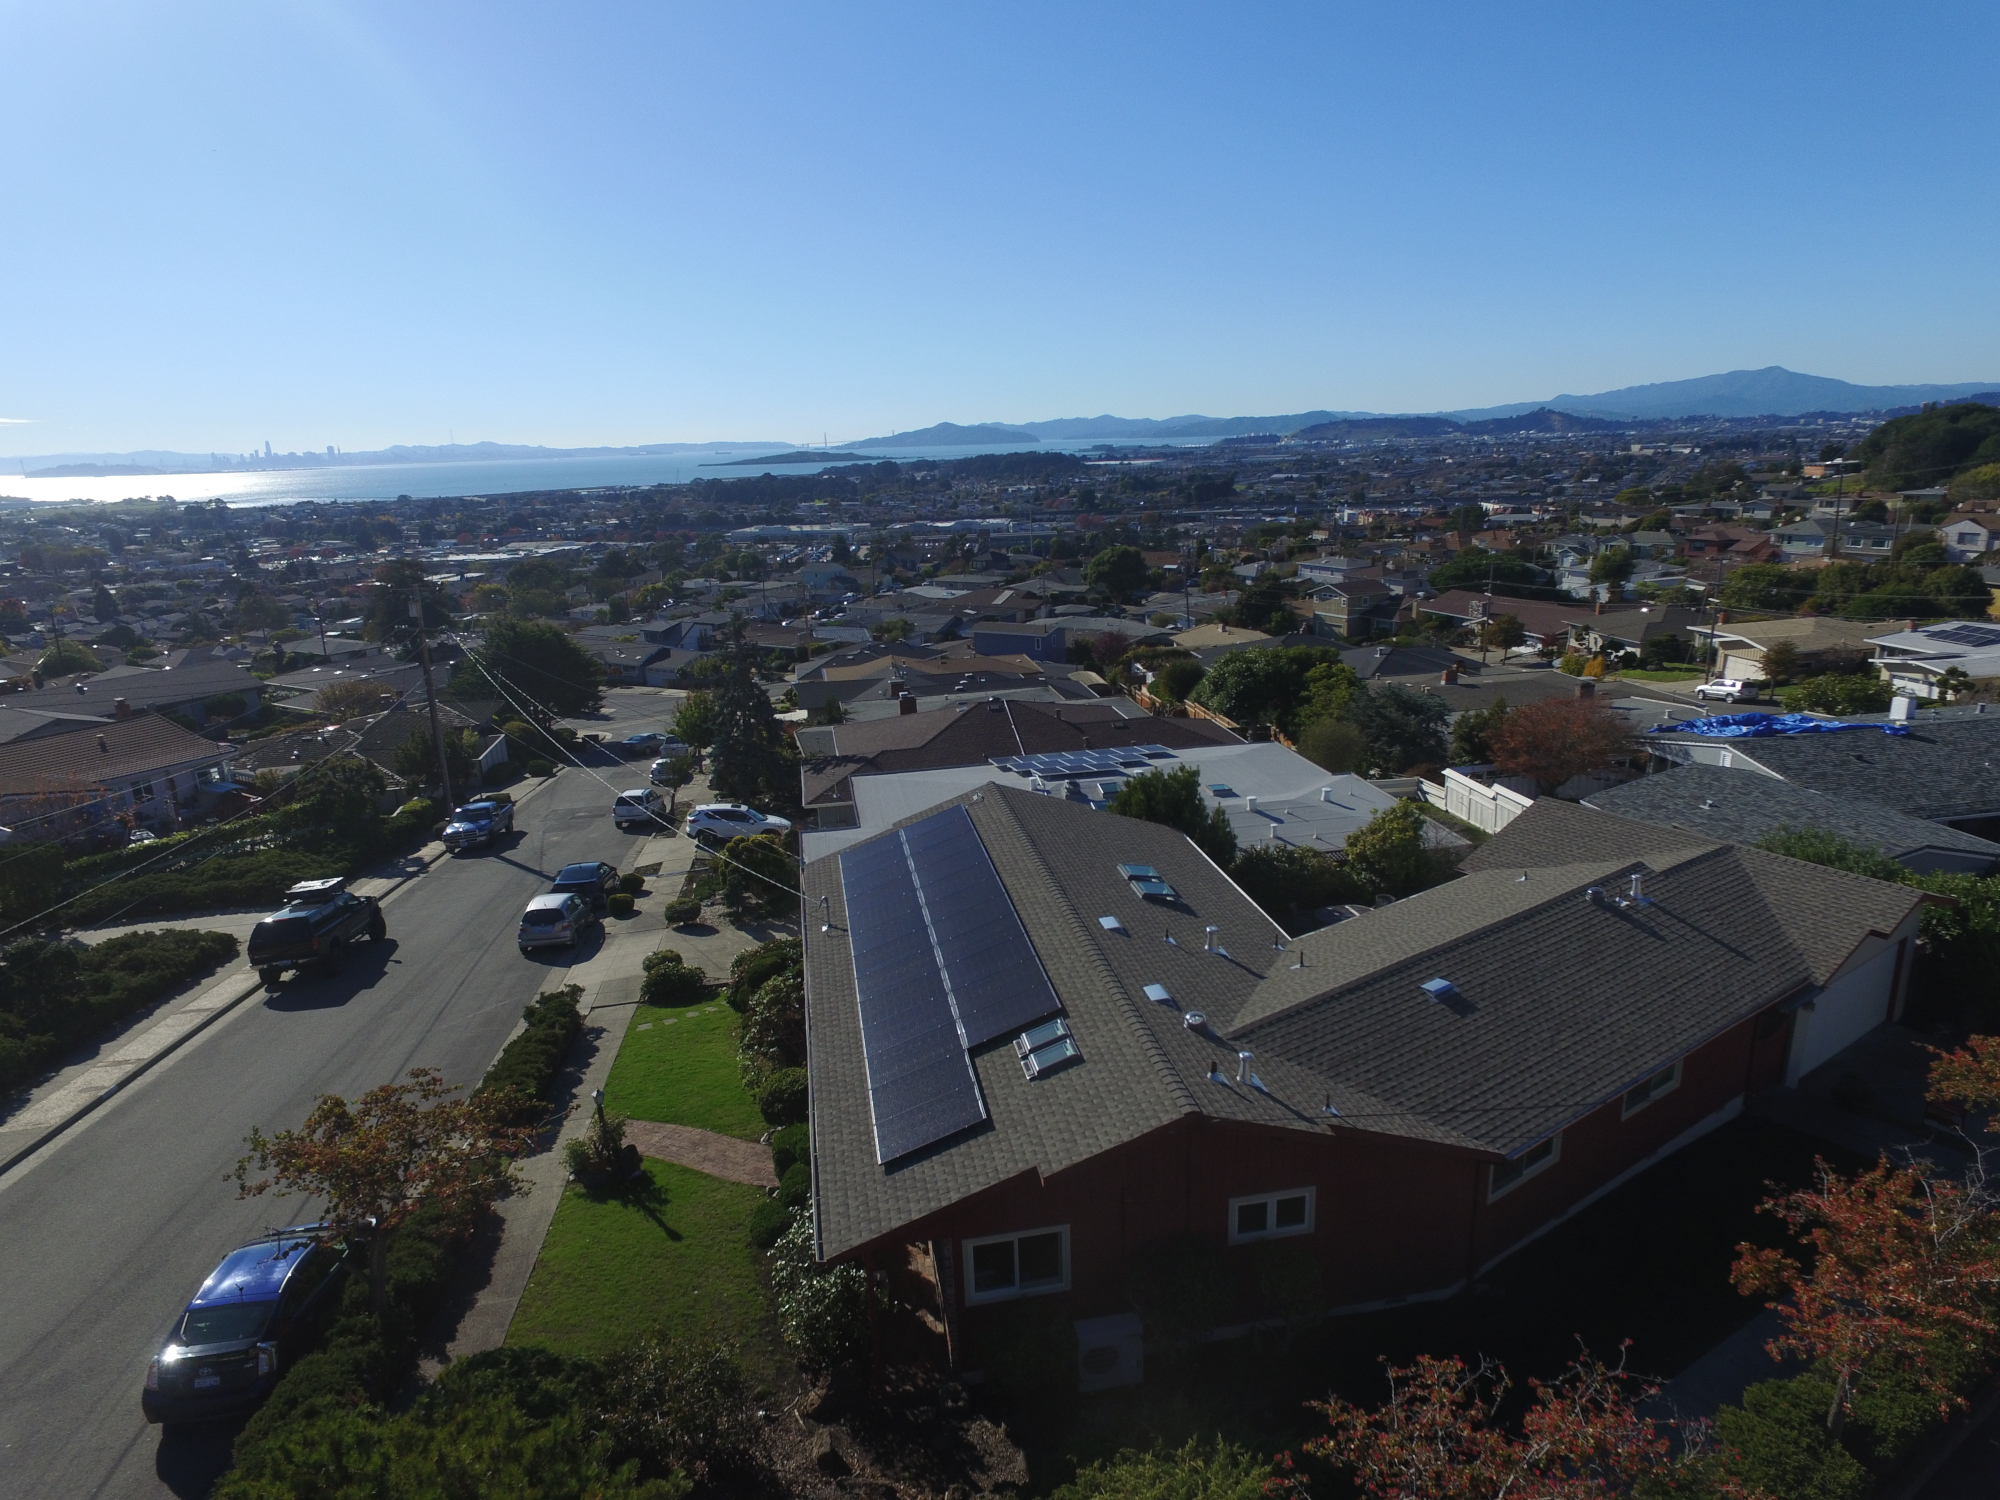 Aerial view of a residential rooftop solar installation looking out across the East Bay to the water